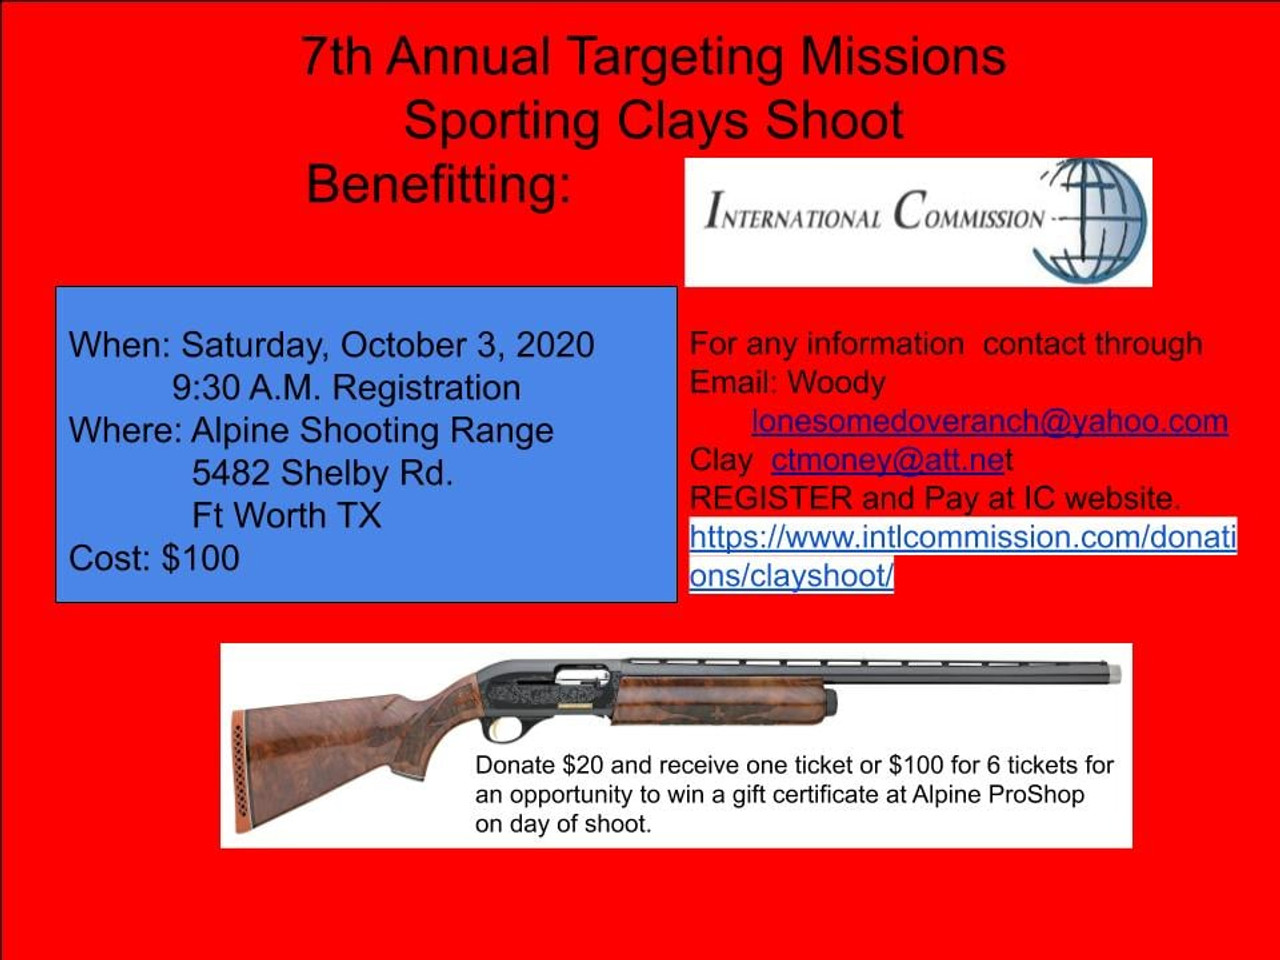 7th Annual Targeting Missions Sporting Clays Shoot - October 3, 2020